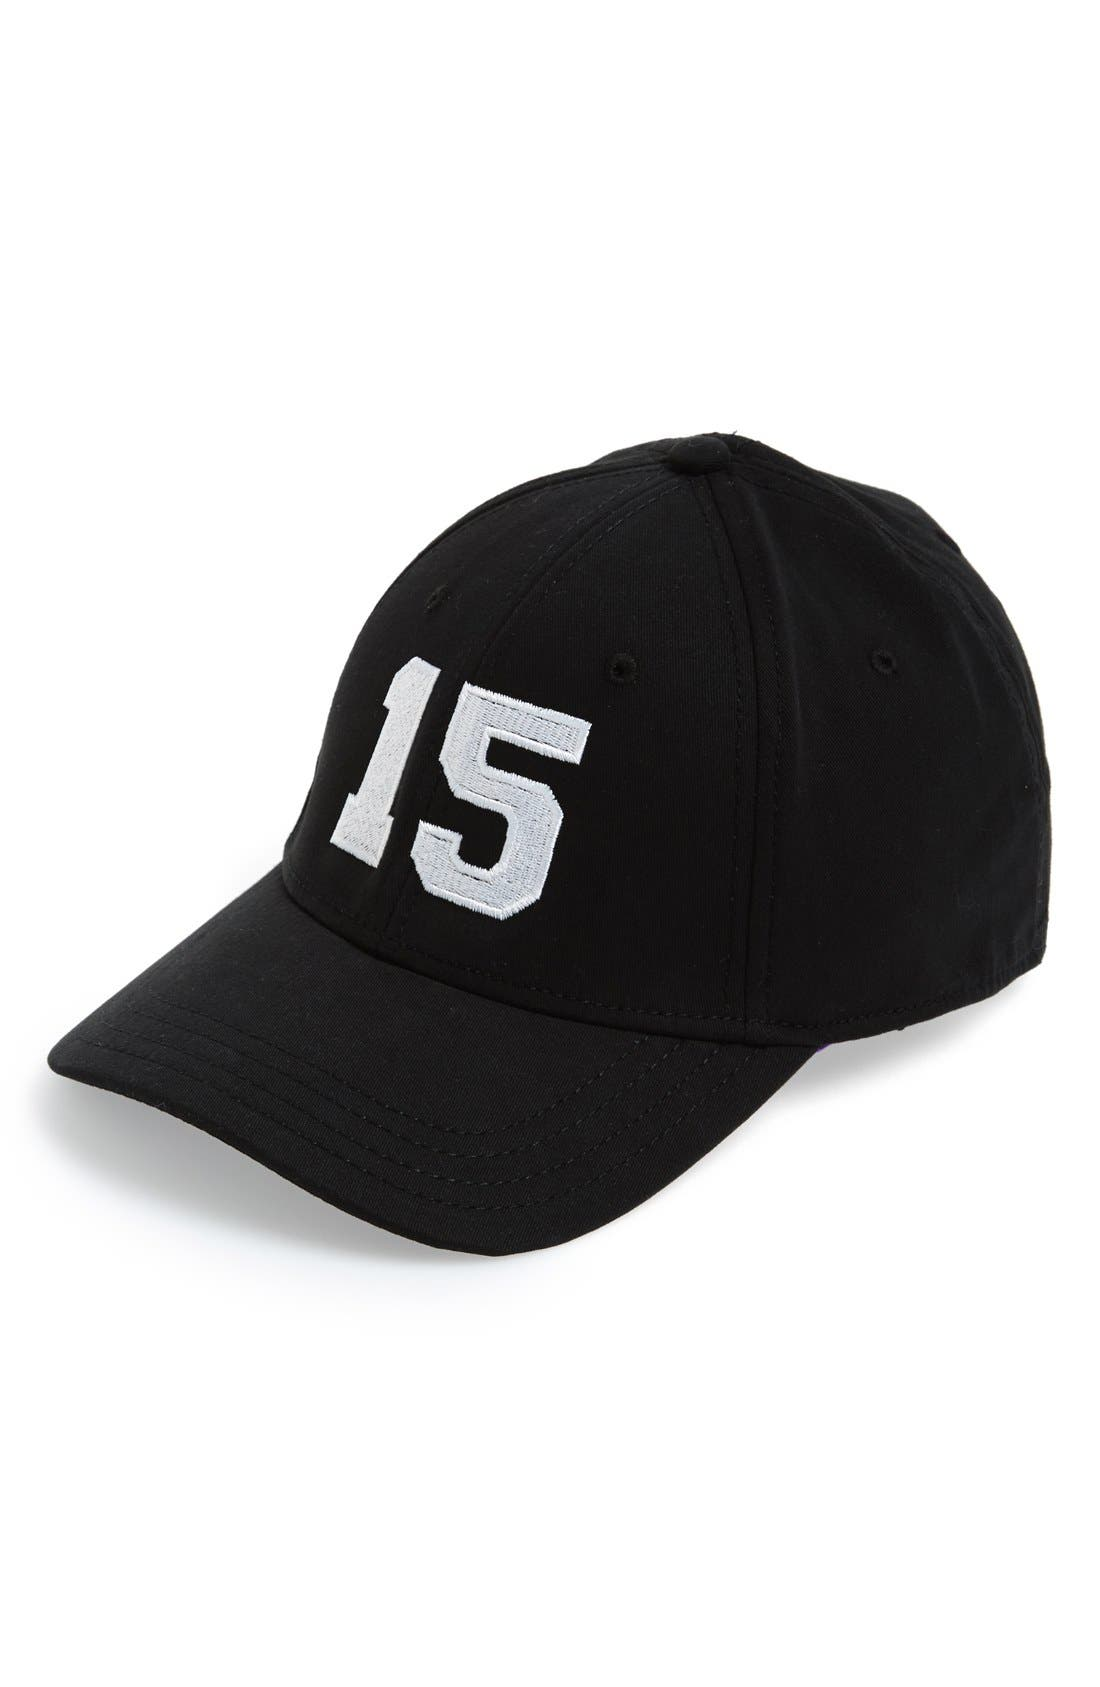 Alternate Image 1 Selected - Gents 'Number 15' Baseball Cap